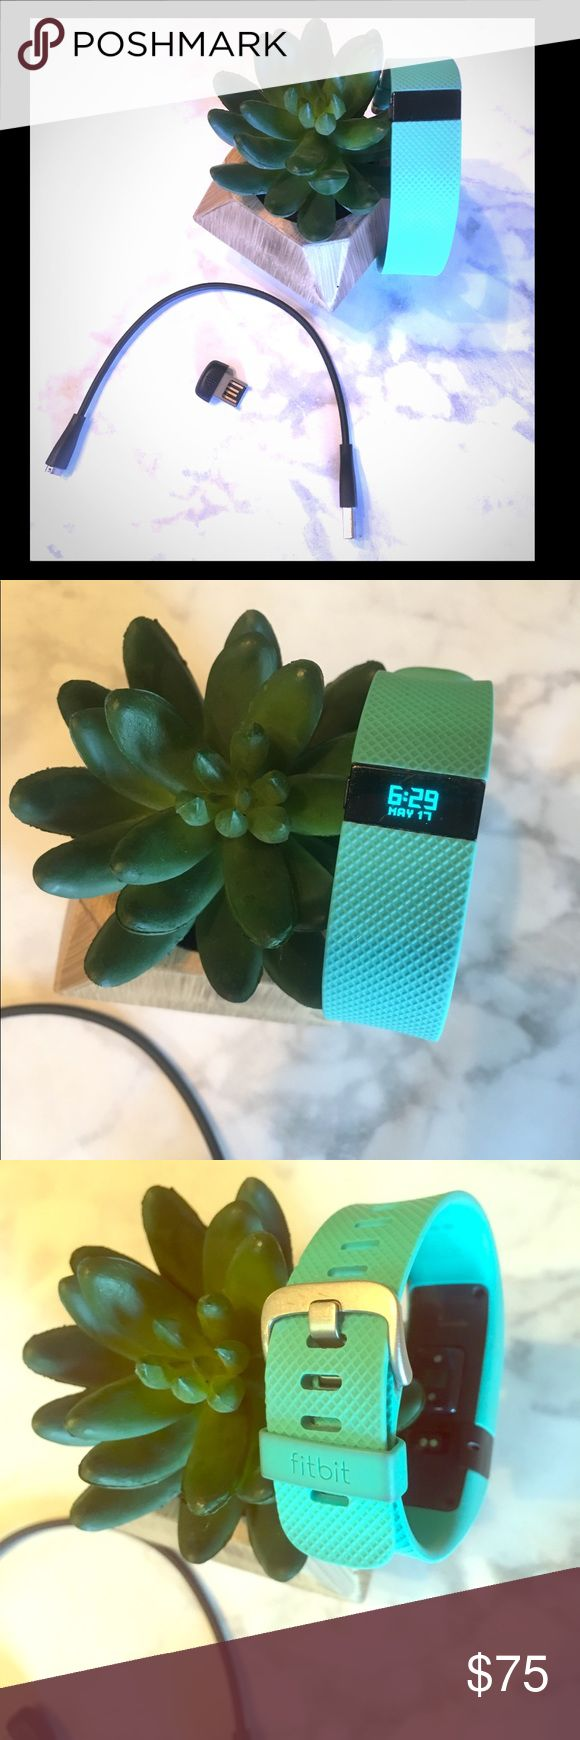 EUC!! Fitbit Charge HR - Small - TEAL color EUC!! Fitbit Charge HR - Size Small - TEAL color! Charger cable & USB connector included. High-performance wristband with automatic, continuous heart rate & activity tracking. See heart rate all day & during workouts to get more accurate calorie burn, reach your target workout intensity & maximize training time. Track steps, distance, floors climbed, sleep quality & more. Stay connected with caller ID, date & time, on display. Charge HR wirelessly…